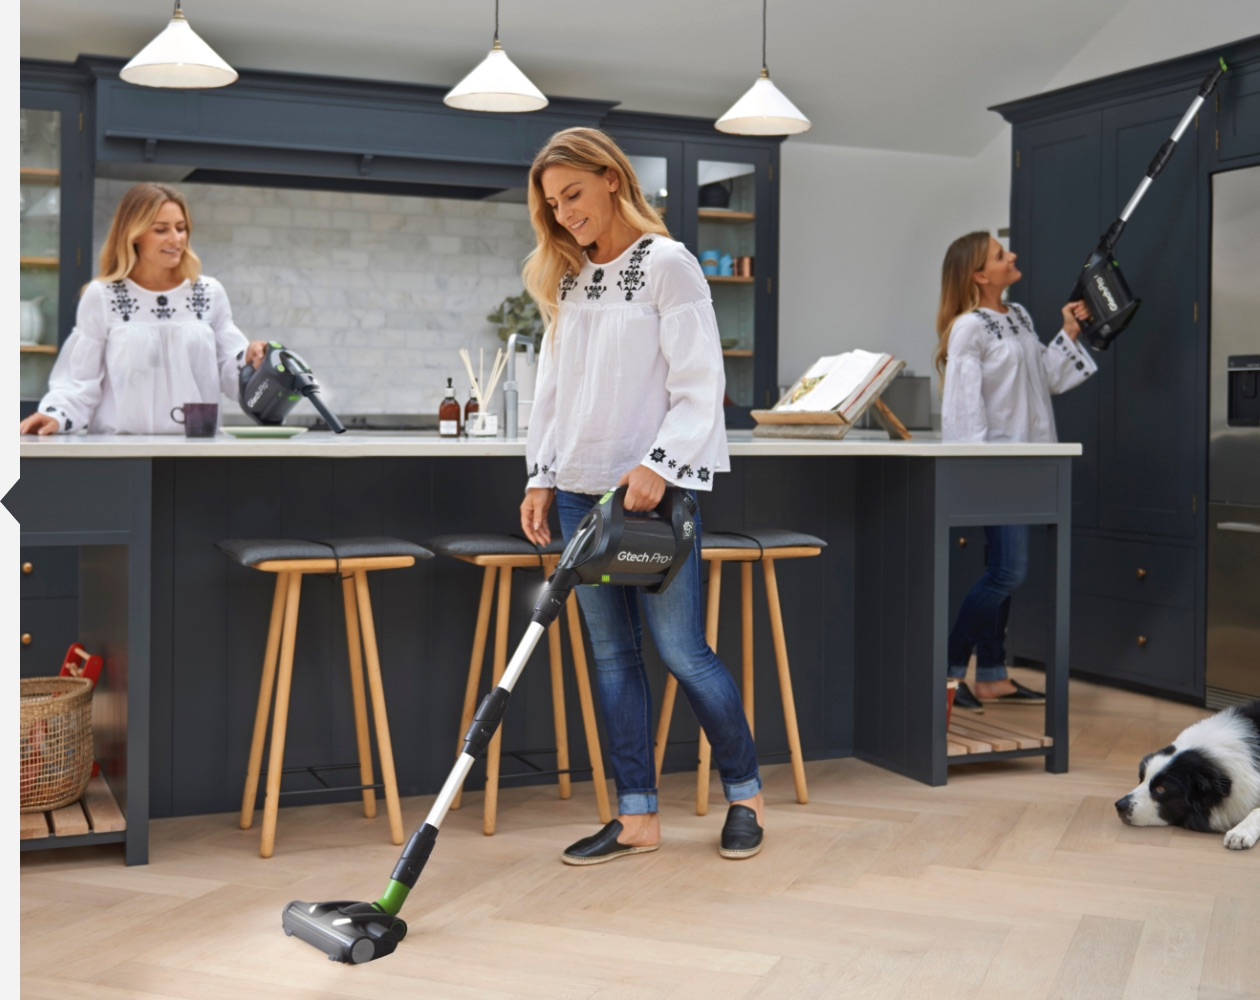 Pro 2 K9 lightweight stick vacuum cleaner easy to manoeuvre